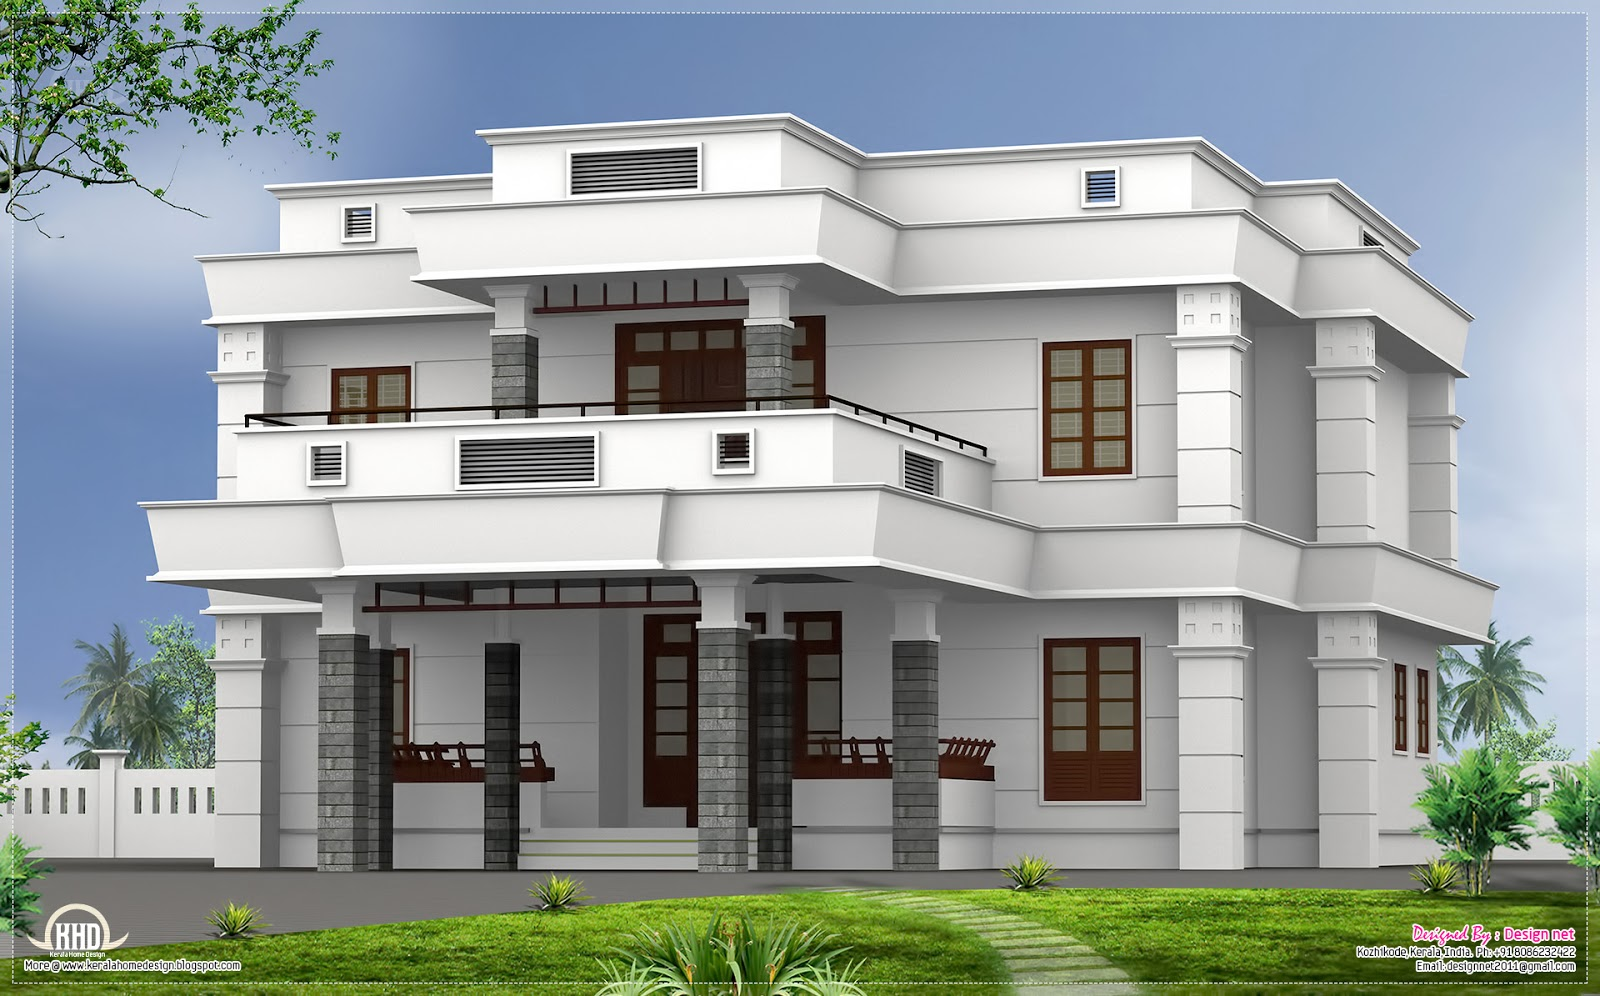 BHK Modern Flat Roof House Design Kerala Home Design And Floor Plans